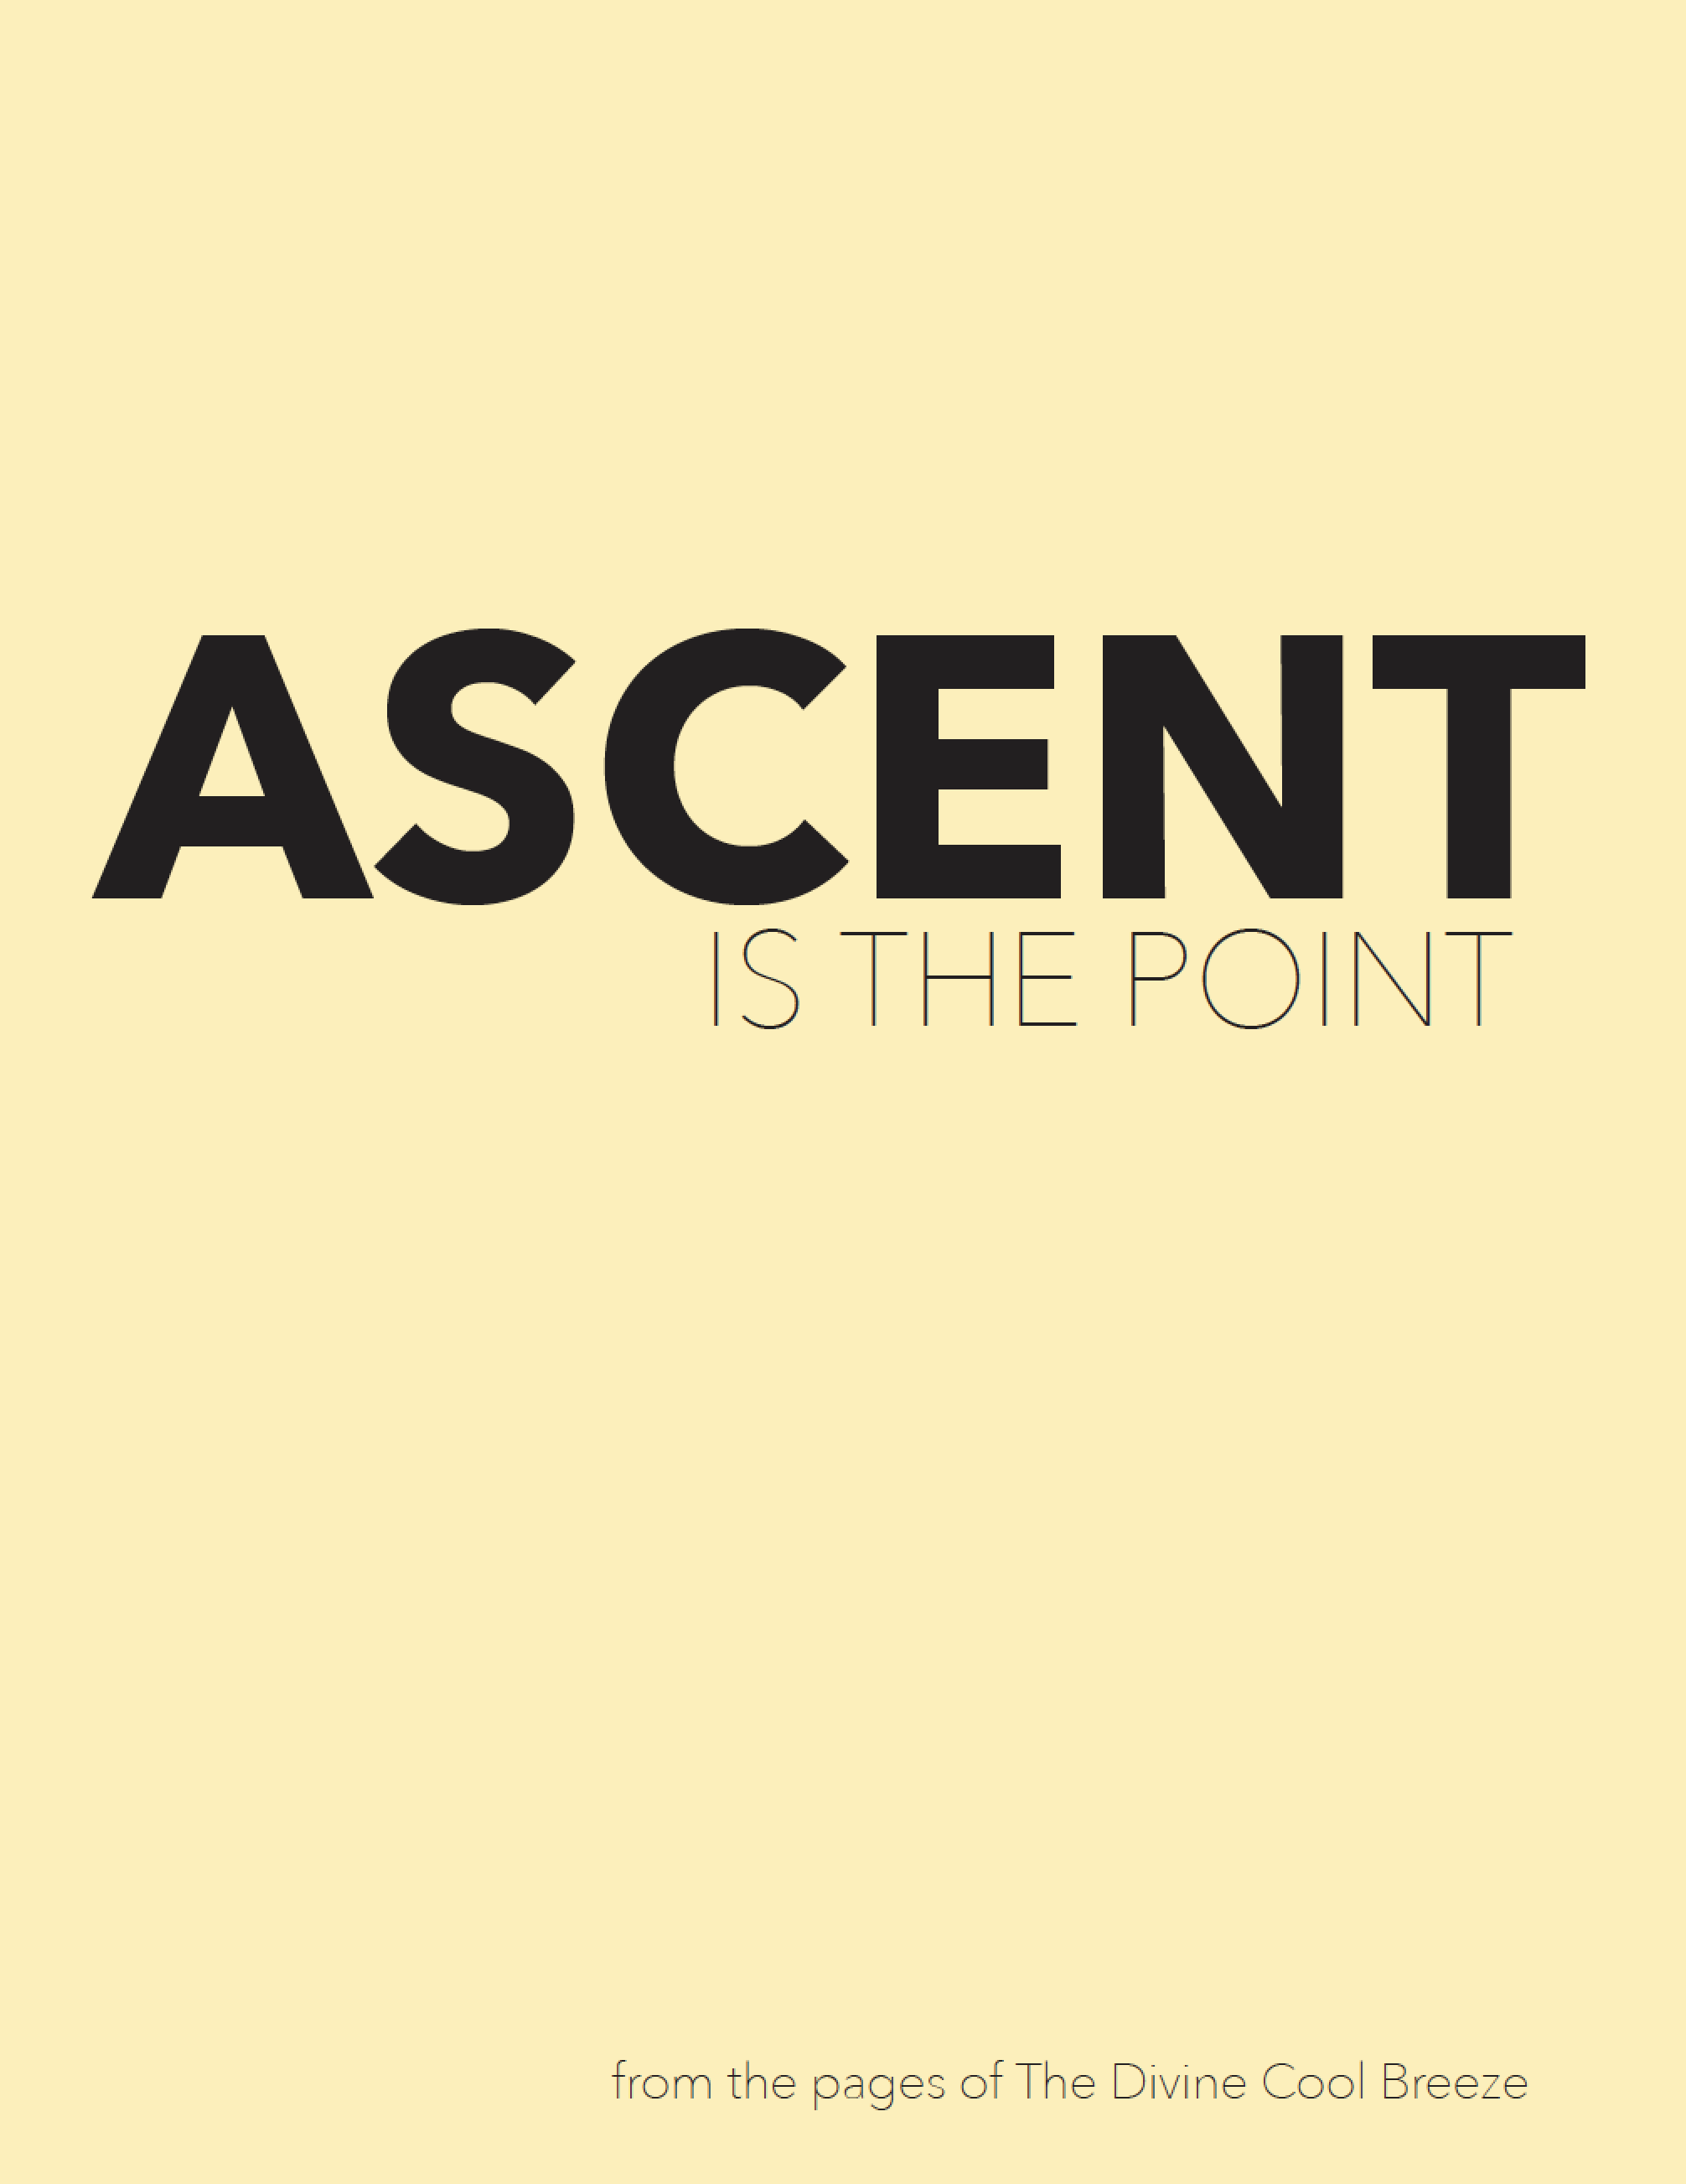 ASCENT IS THE POINT